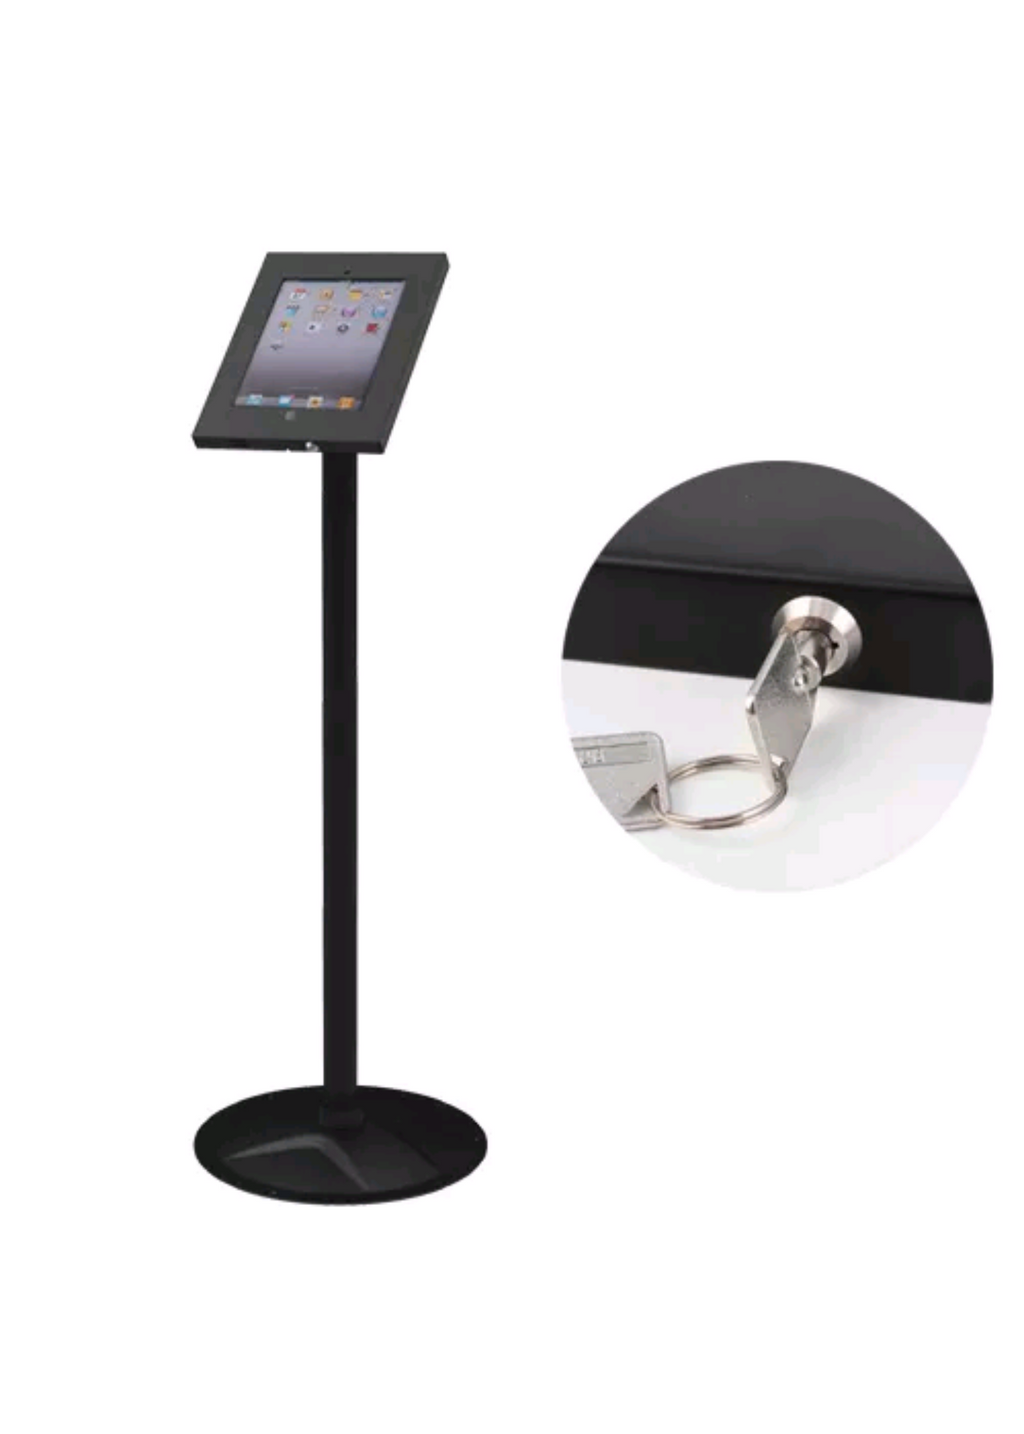 iPad 2/3/4 air Lockable stand - Simtek World